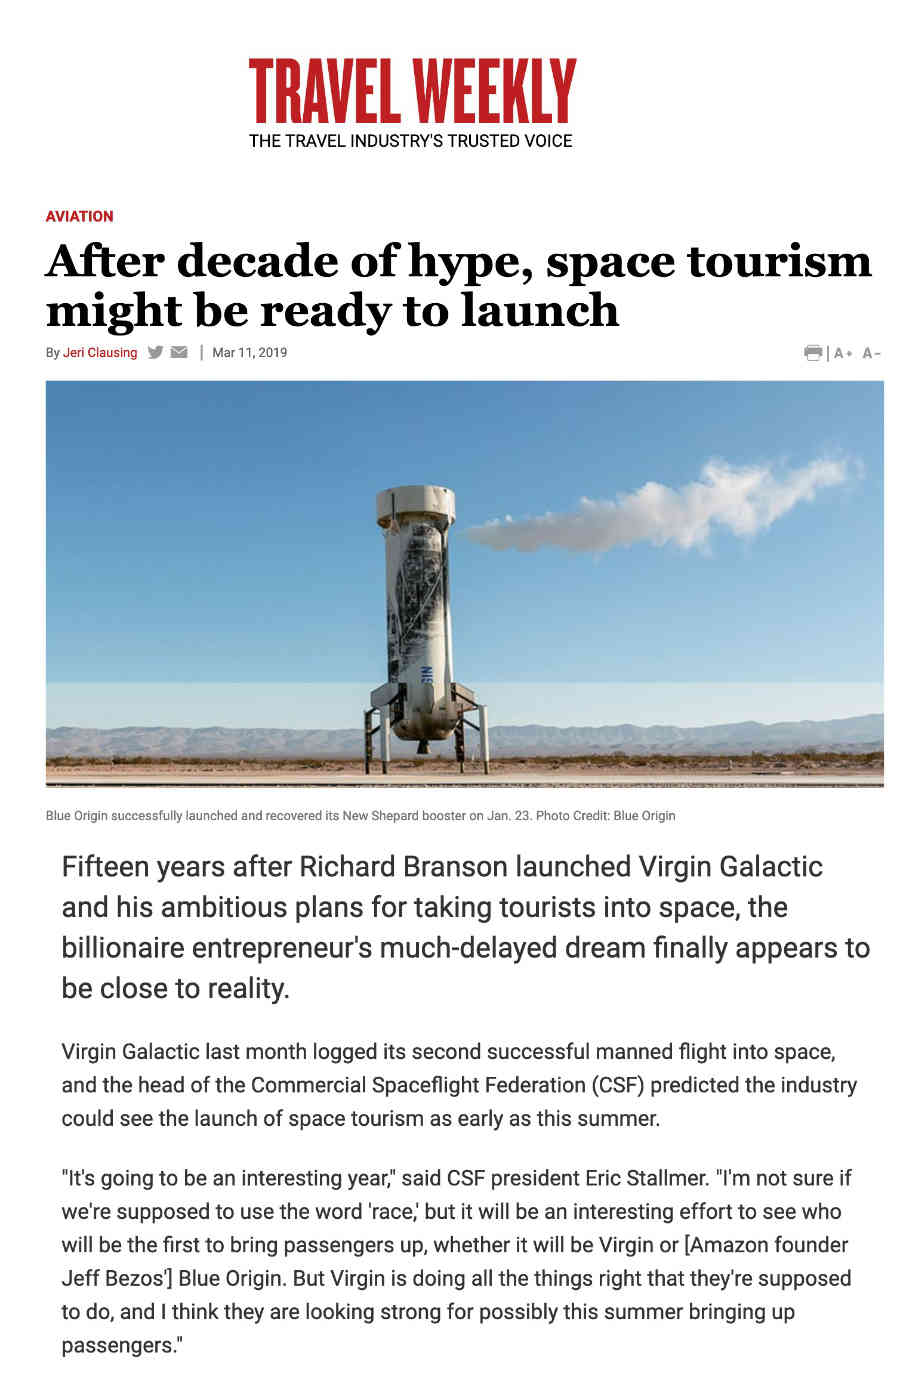 Travel Weekly on Space Tourism launching out of Spaceport America near Truth or Consequences NM